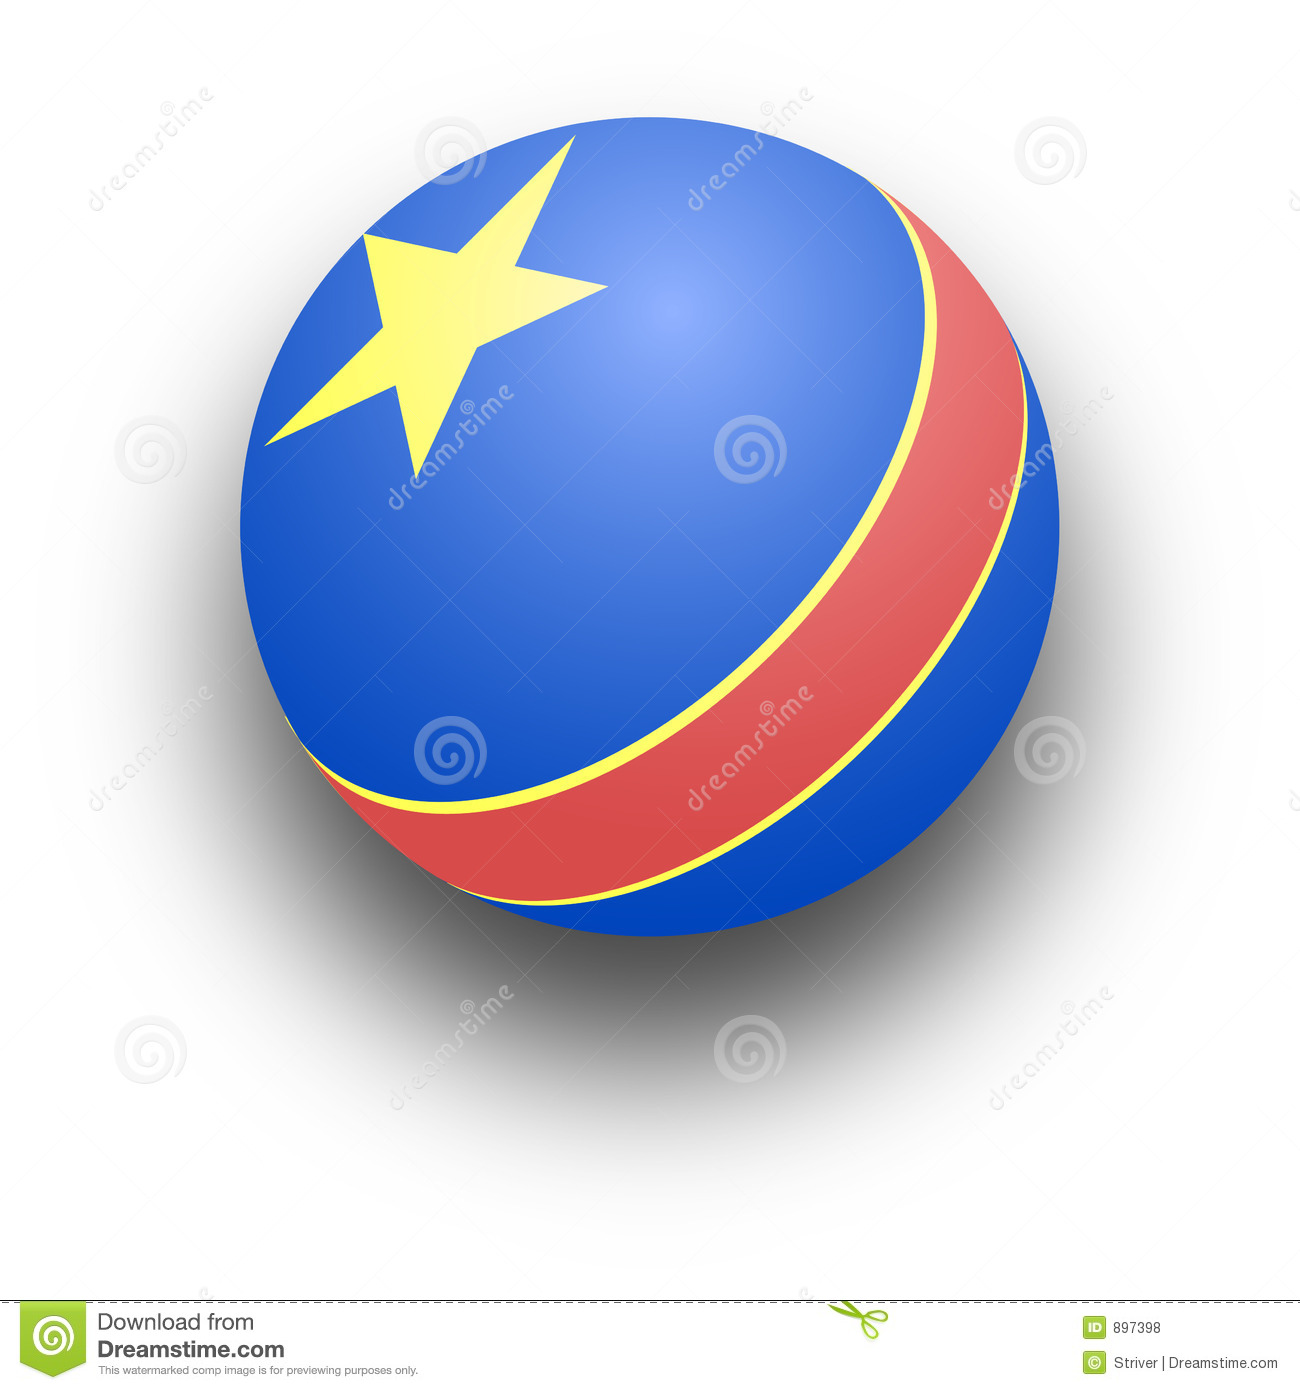 Red Ball Toy : Toy ball stock illustration image of bounce play toys